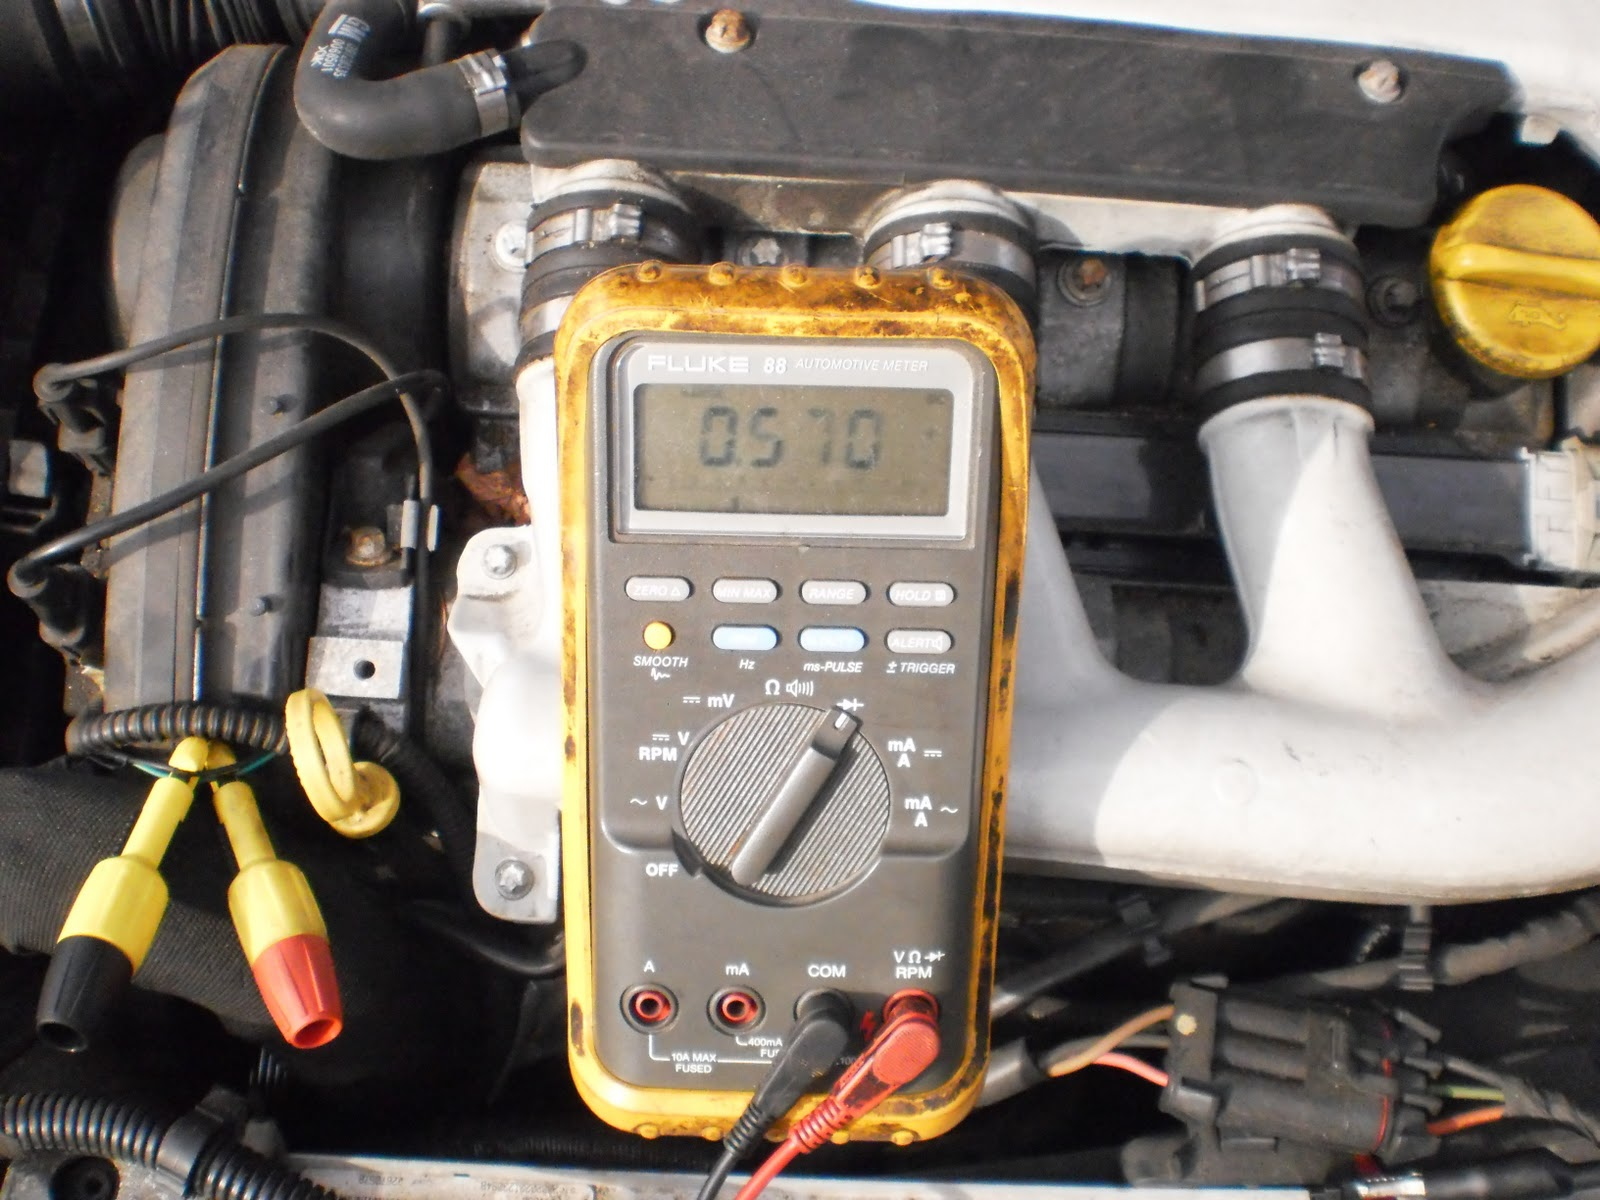 Jwr Automotive Diagnostics 2002 Saturn L300 Car Fuse Box Test Luckily This Shop Owner Had A Gm That Was Going To The Boneyard I Quickly Stole Diode Out Of Fusebox Lets One